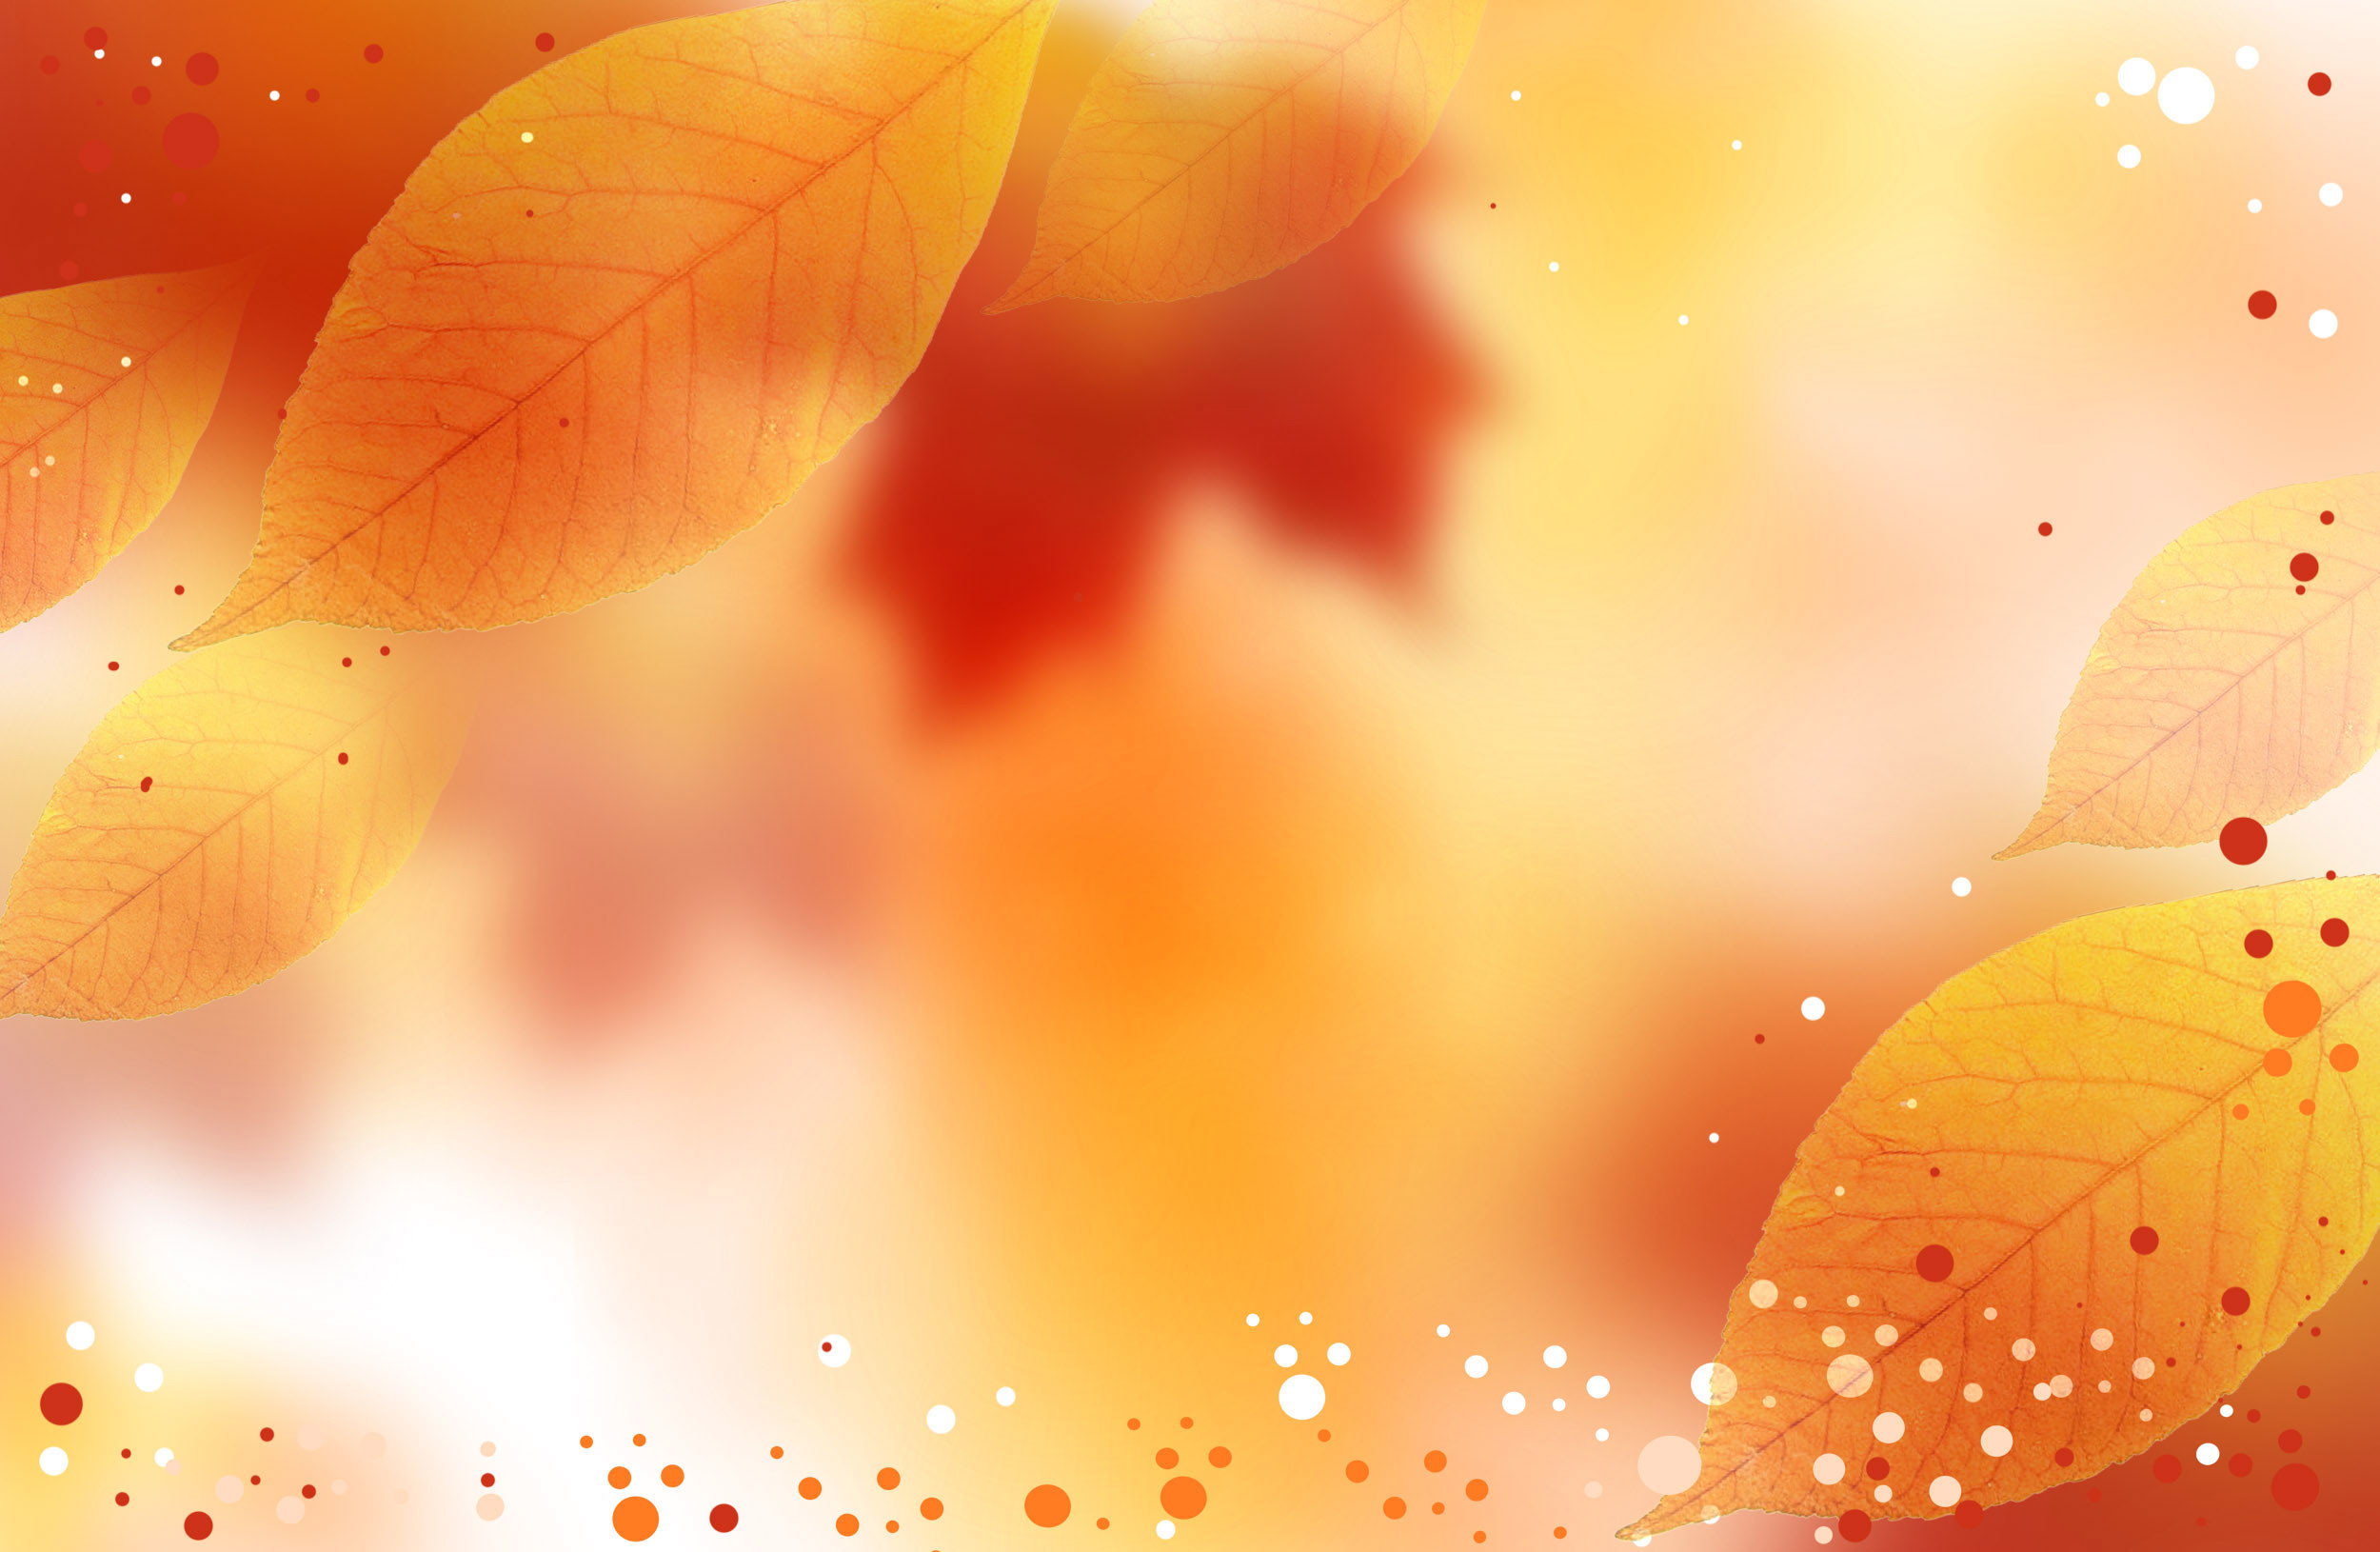 Fall colors on the background with Autumn leaves and white, orange and red  dots as spread and highlights.